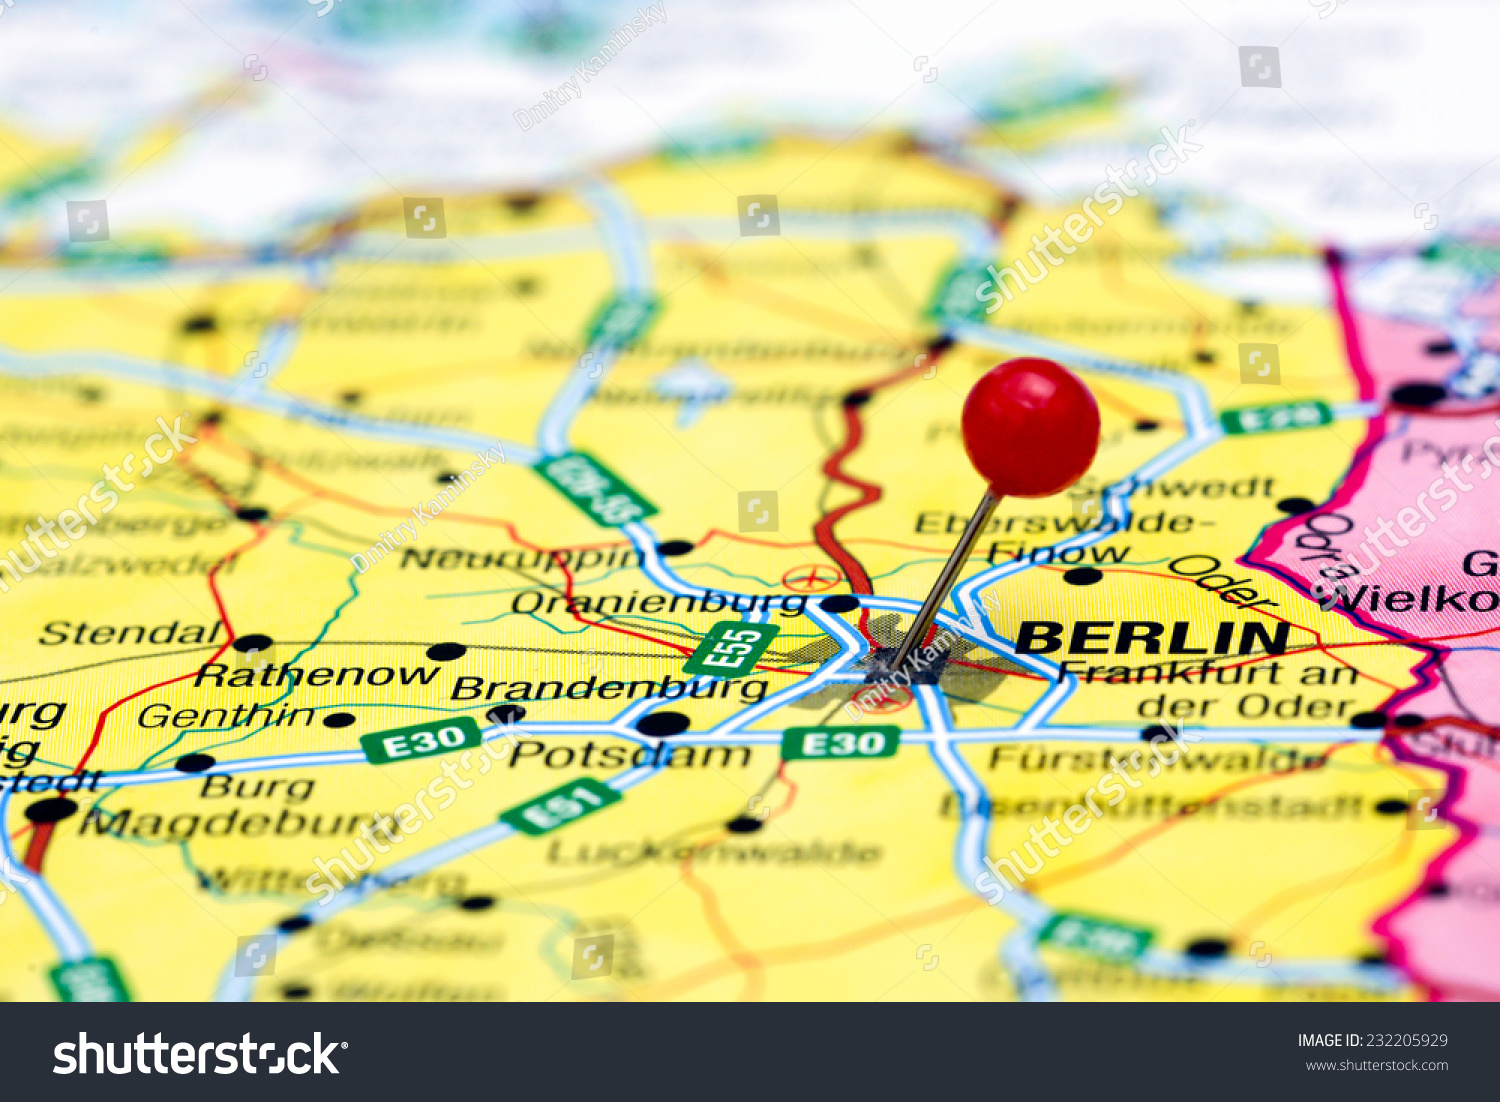 Berlin Pinned On Map Europe Stock Photo Edit Now 232205929